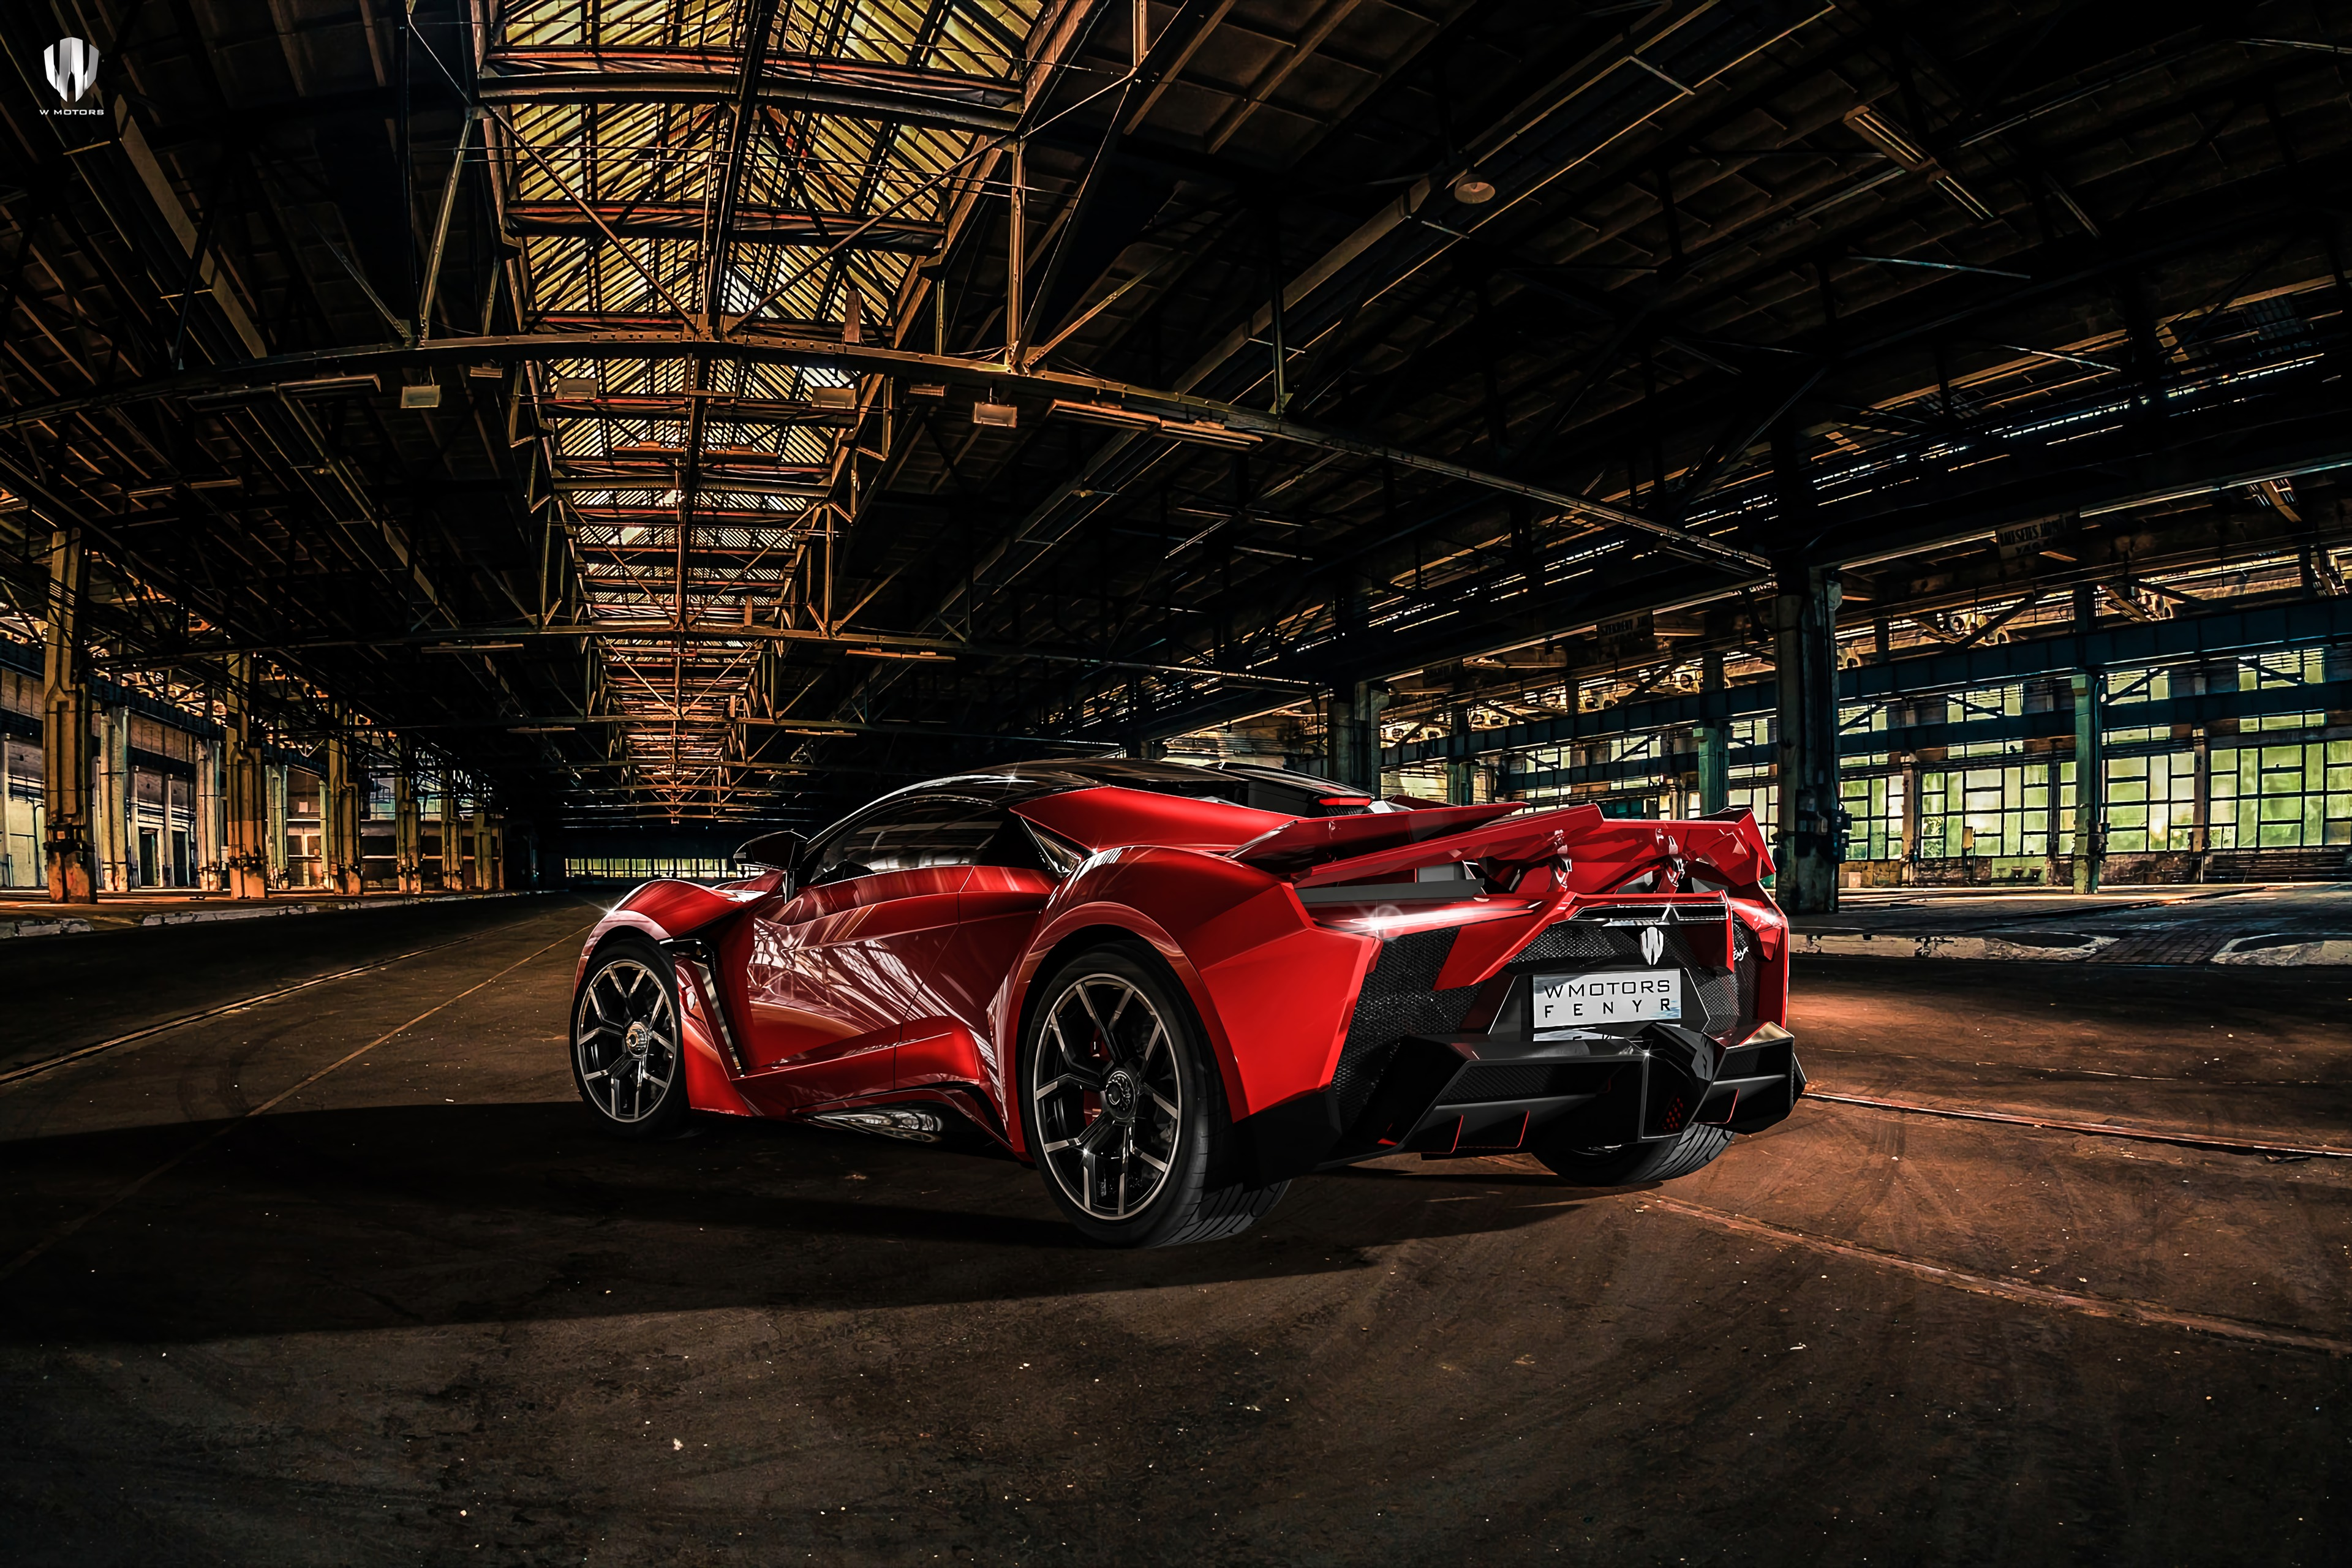 64720 download wallpaper Cars, Auto, Sports Car, Sports, Aggressive, Dark screensavers and pictures for free